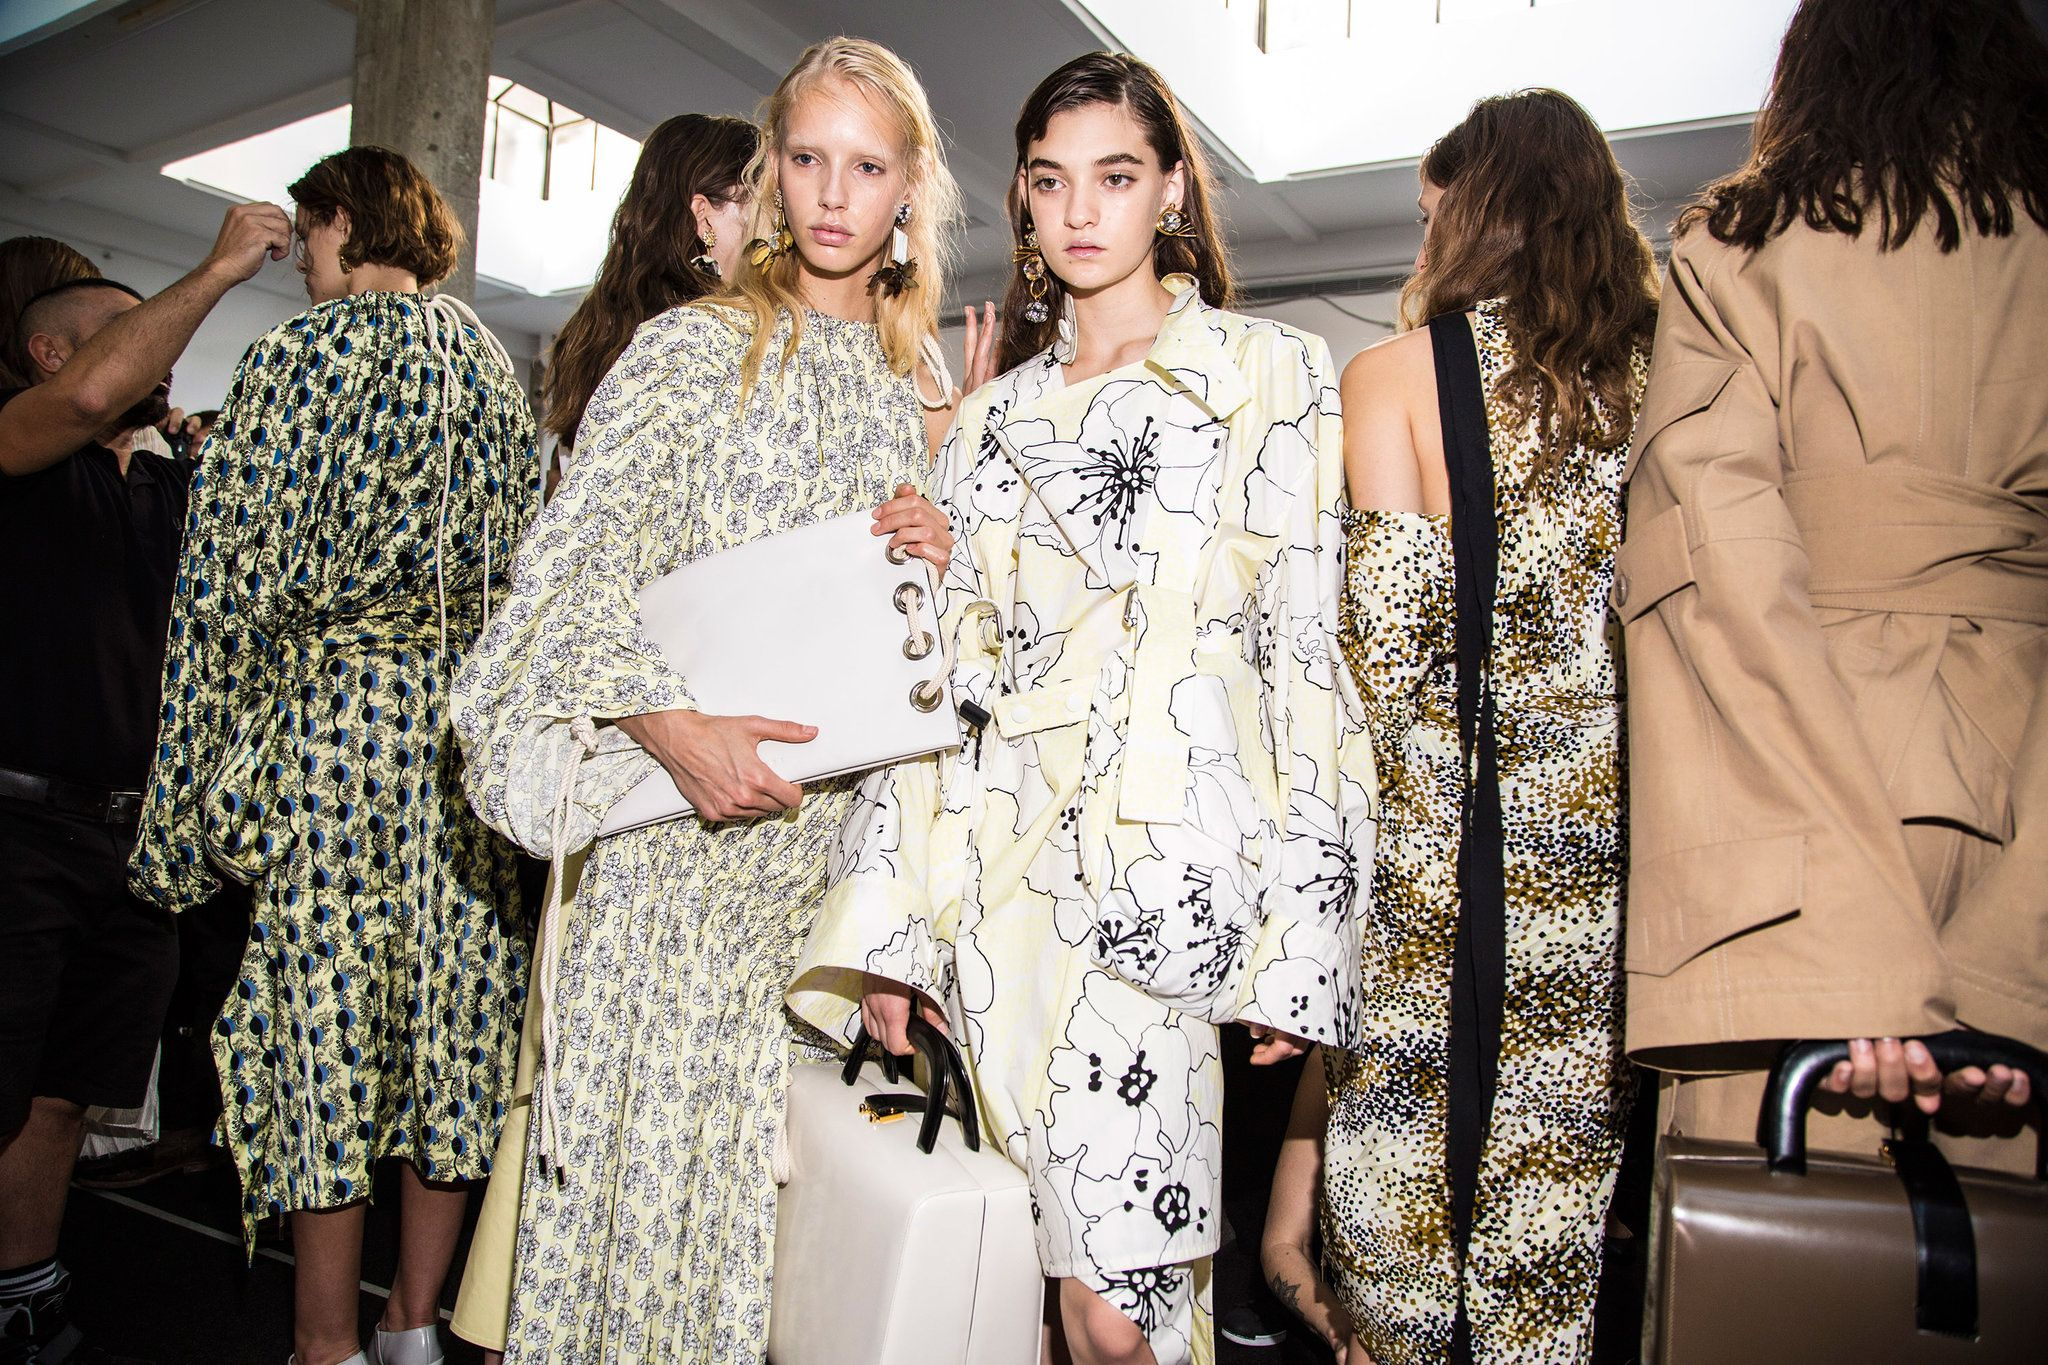 Scenes from the spring/summer 2017 collections that were presented in Milan on Sunday.